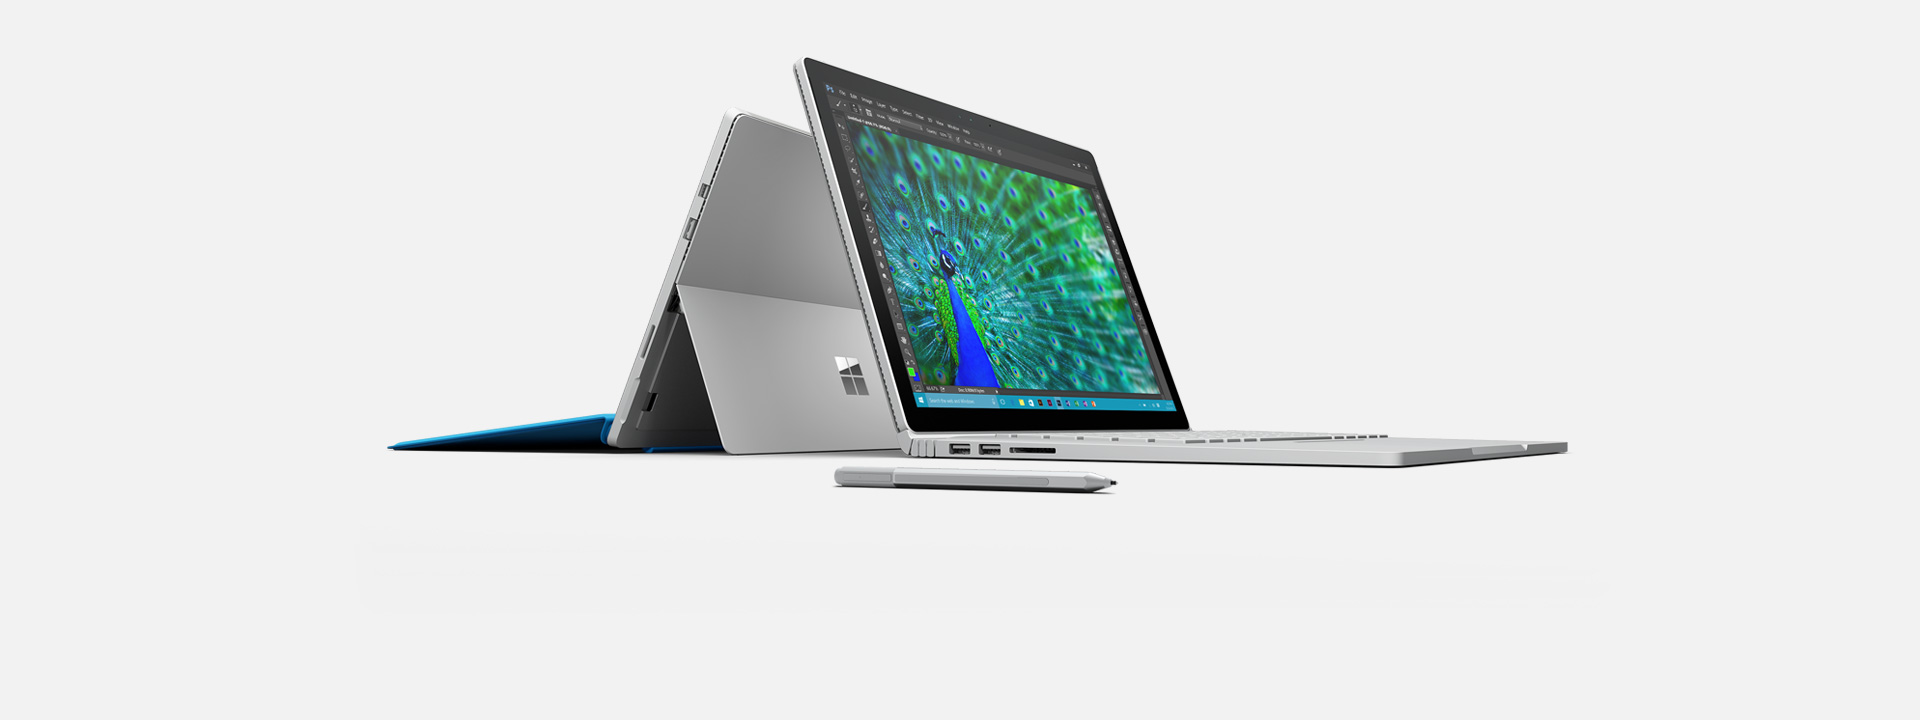 Learn more about Surface Book & Surface Pro 4.